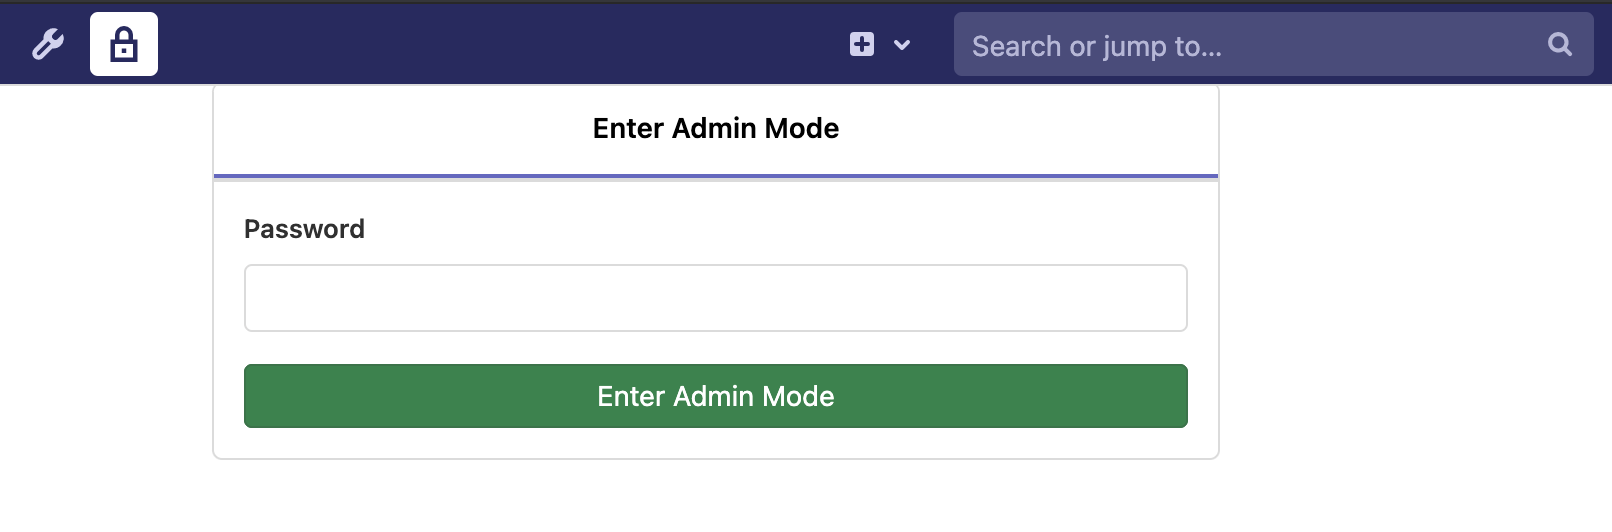 Re-authenticate for GitLab administration with Admin Mode